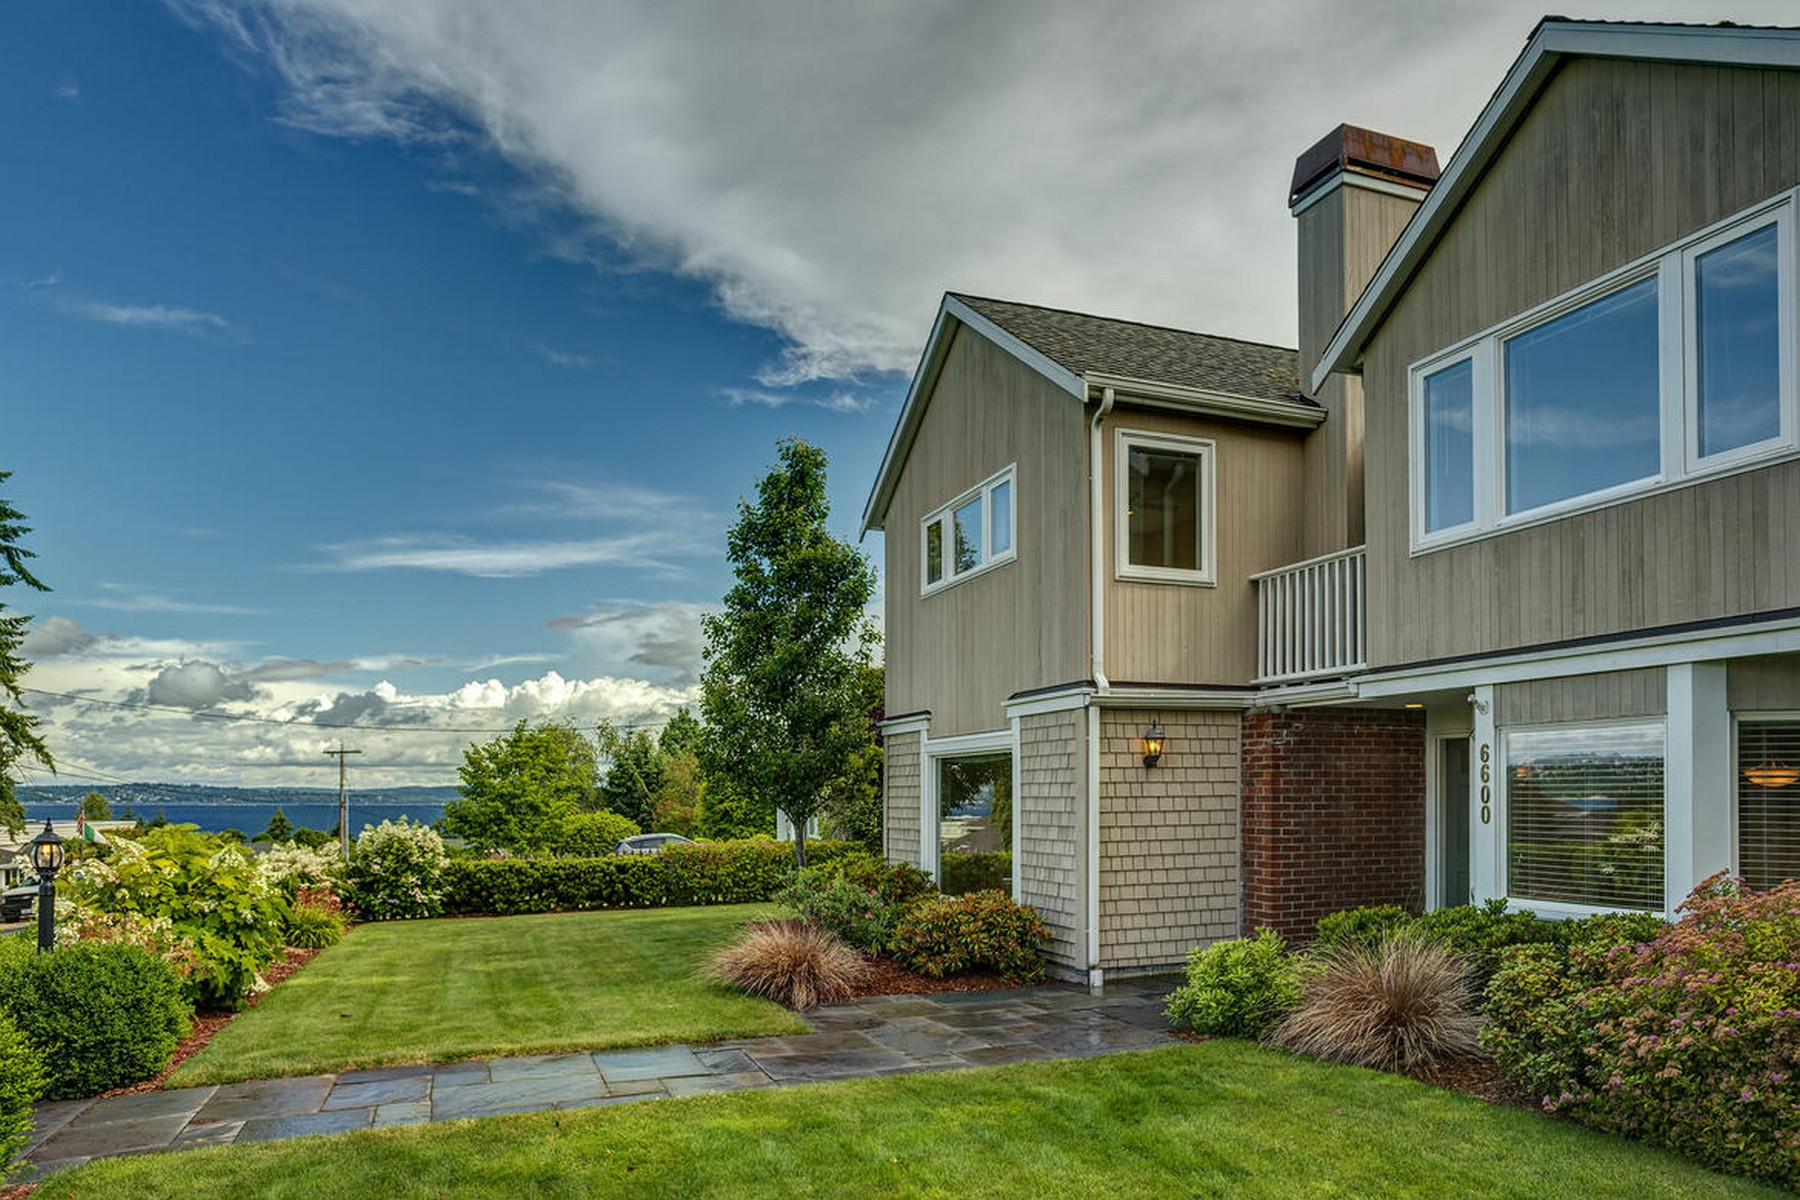 Single Family Home for Sale at Traditional First Hill Home 6600 SE 24TH ST Mercer Island, Washington, 98040 United States